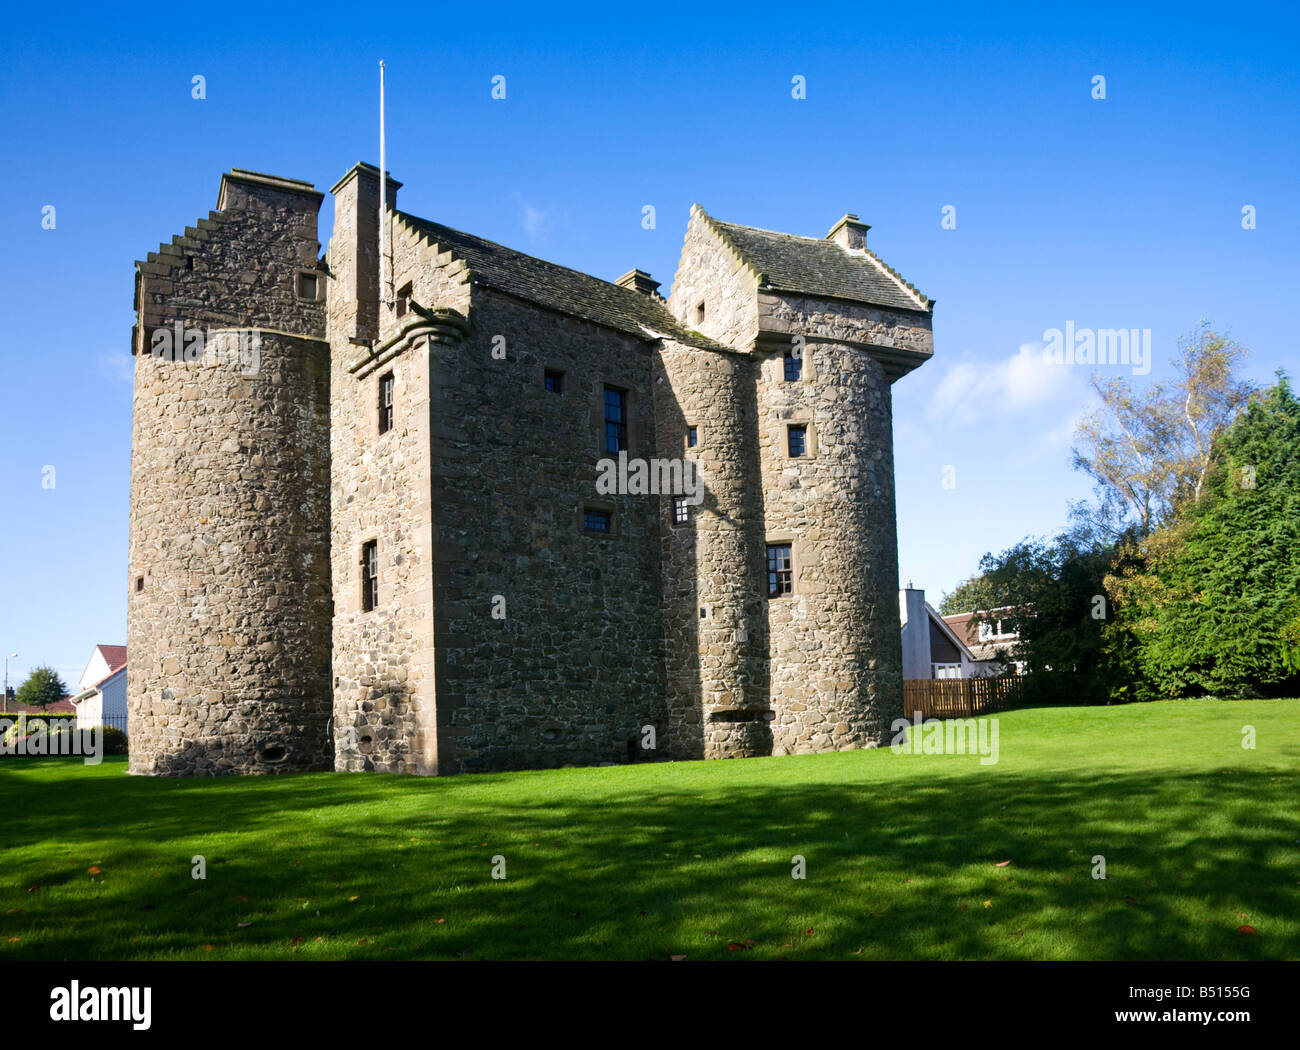 Claypotts castle a 16th century fortified tower house for Castle house plans with towers